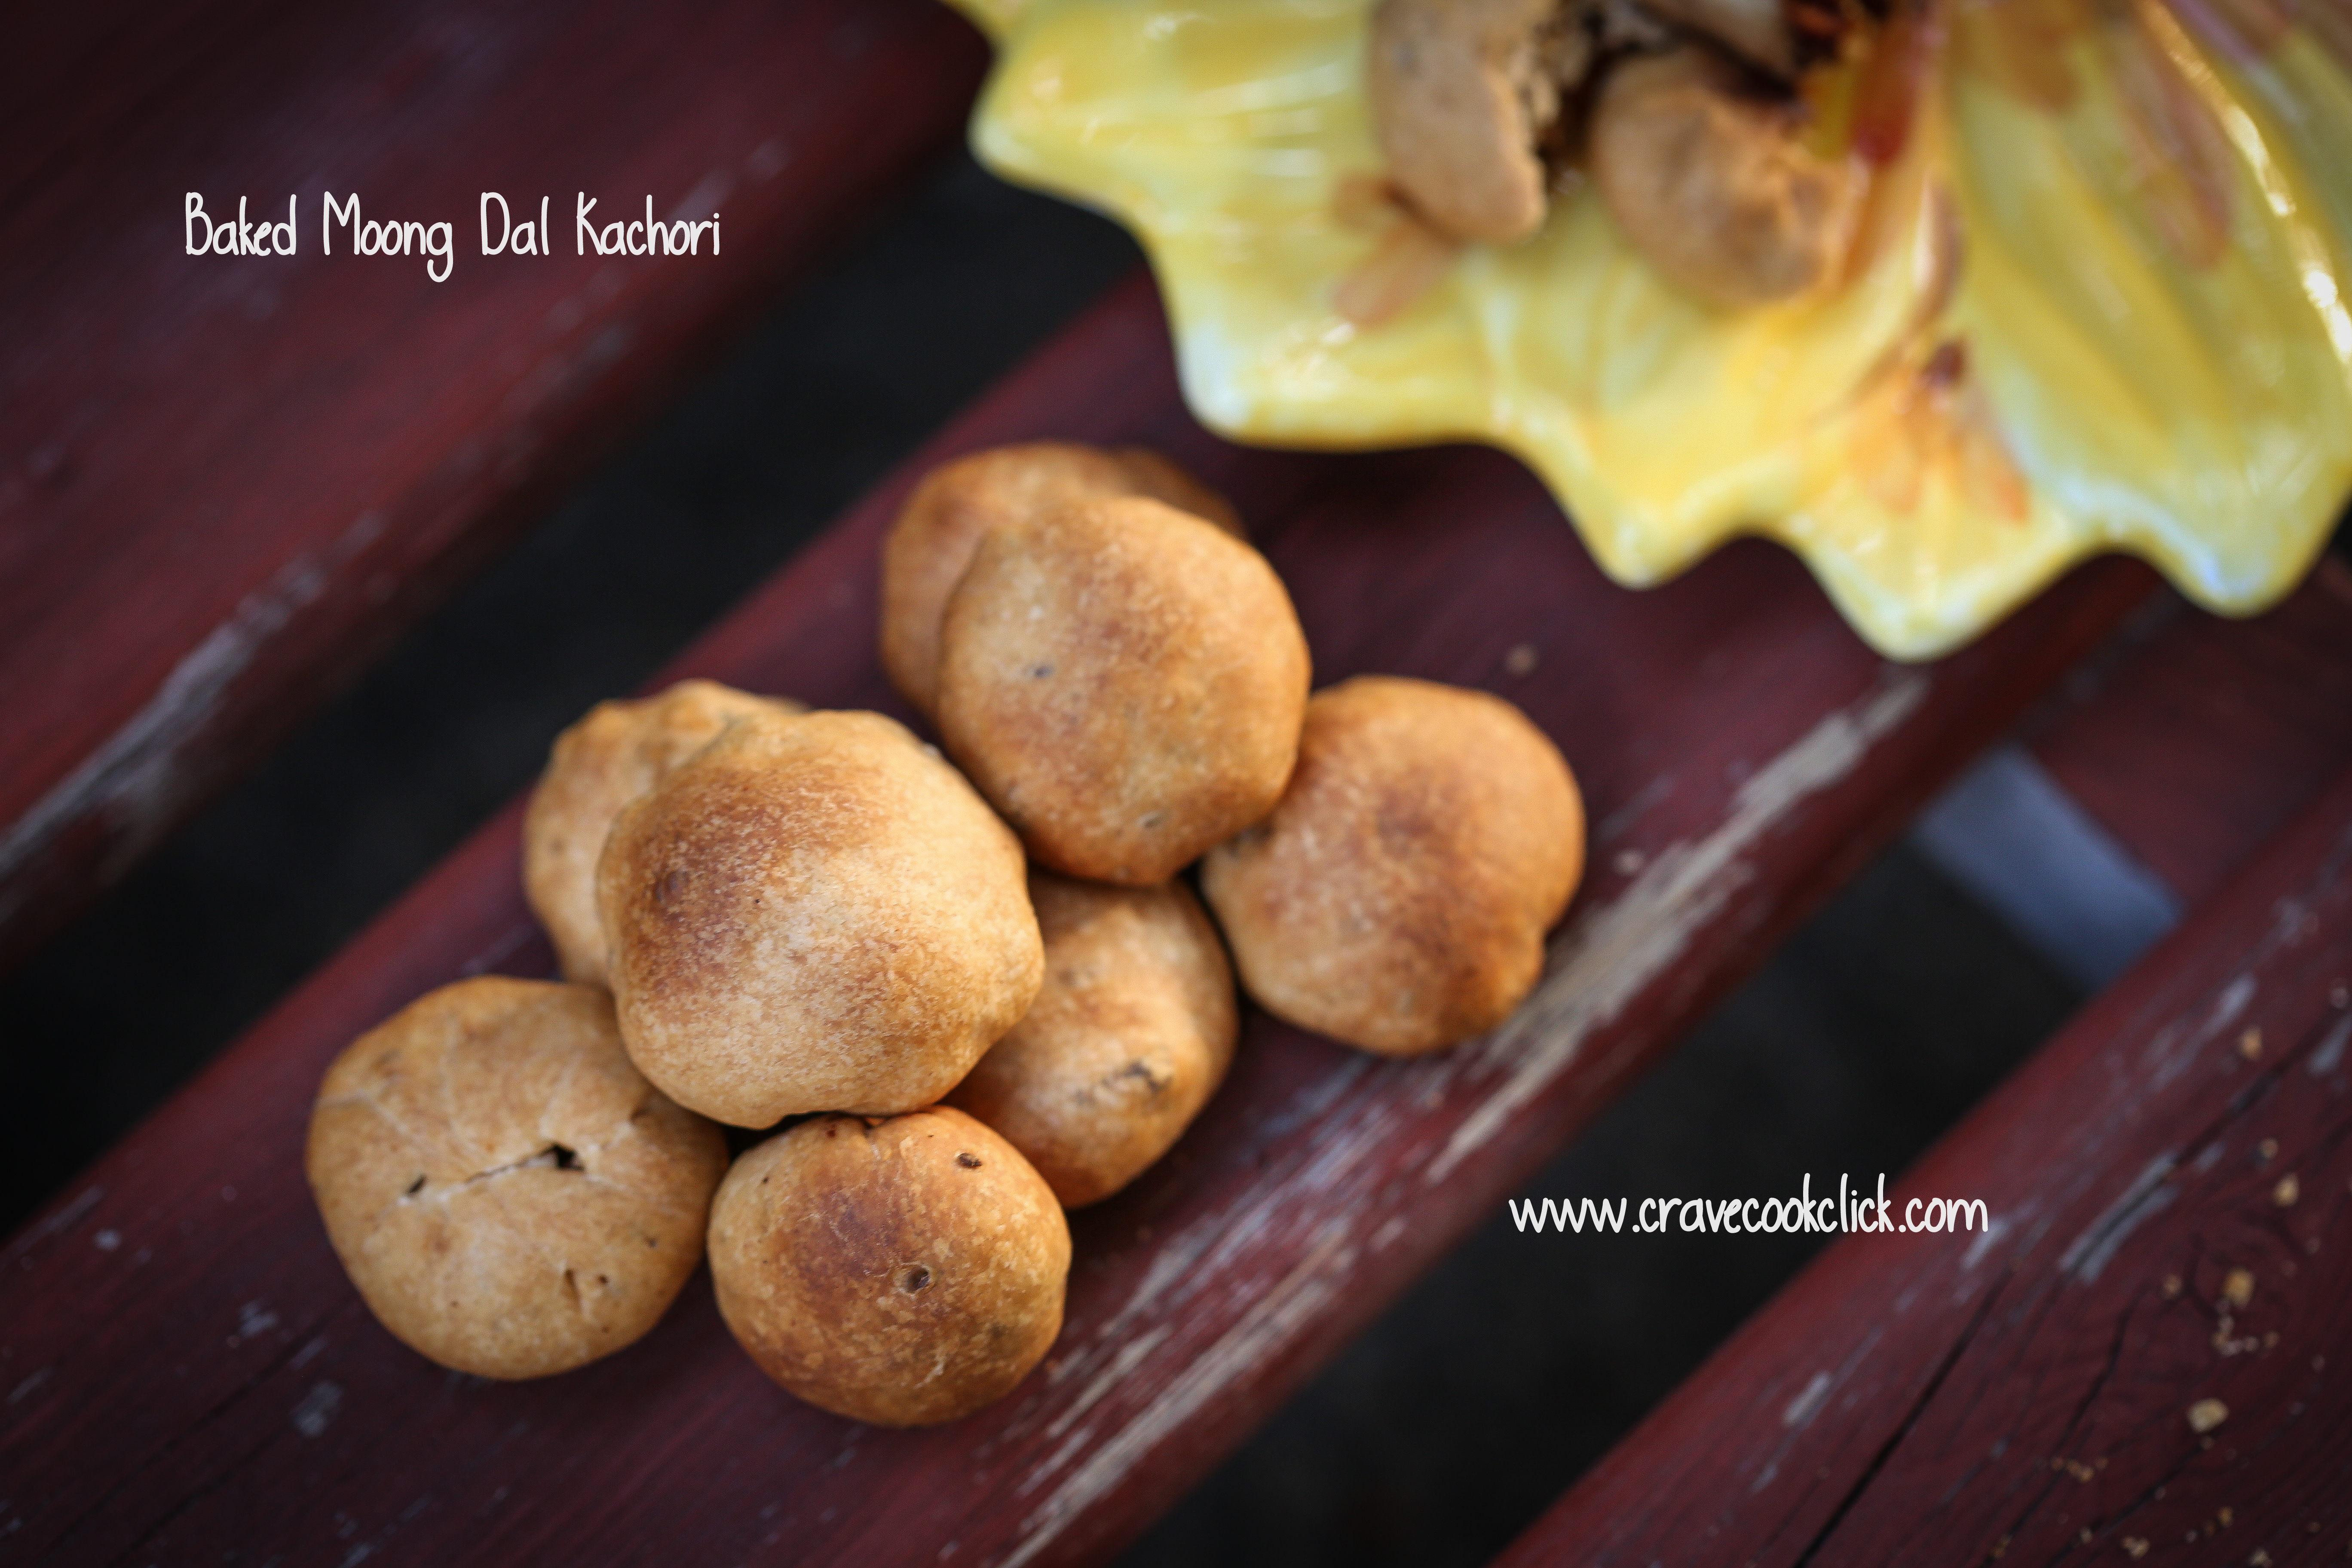 Baked Moong Dal Kachori/How to make a baked kachori